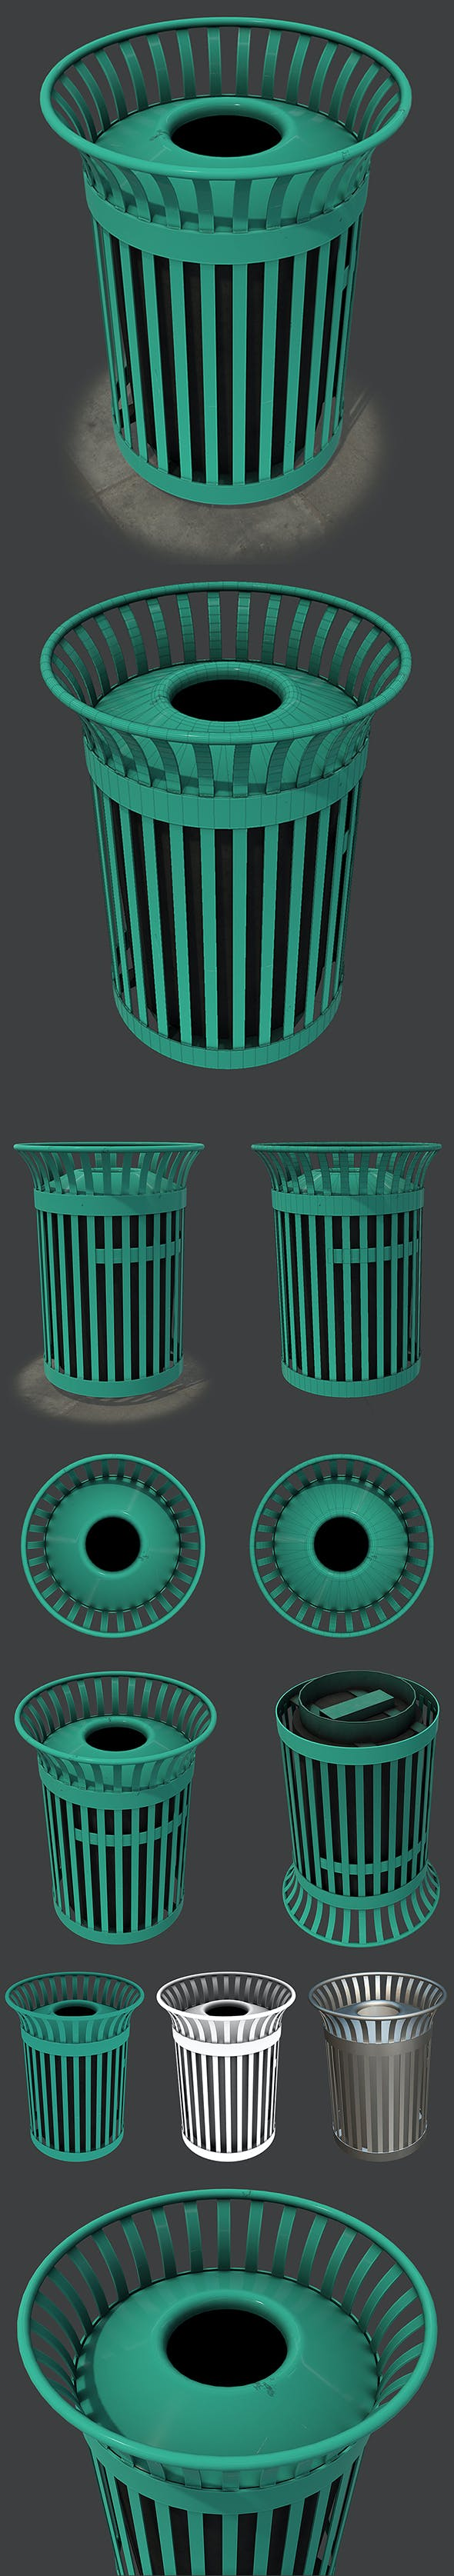 New York Trash Can - 3DOcean Item for Sale